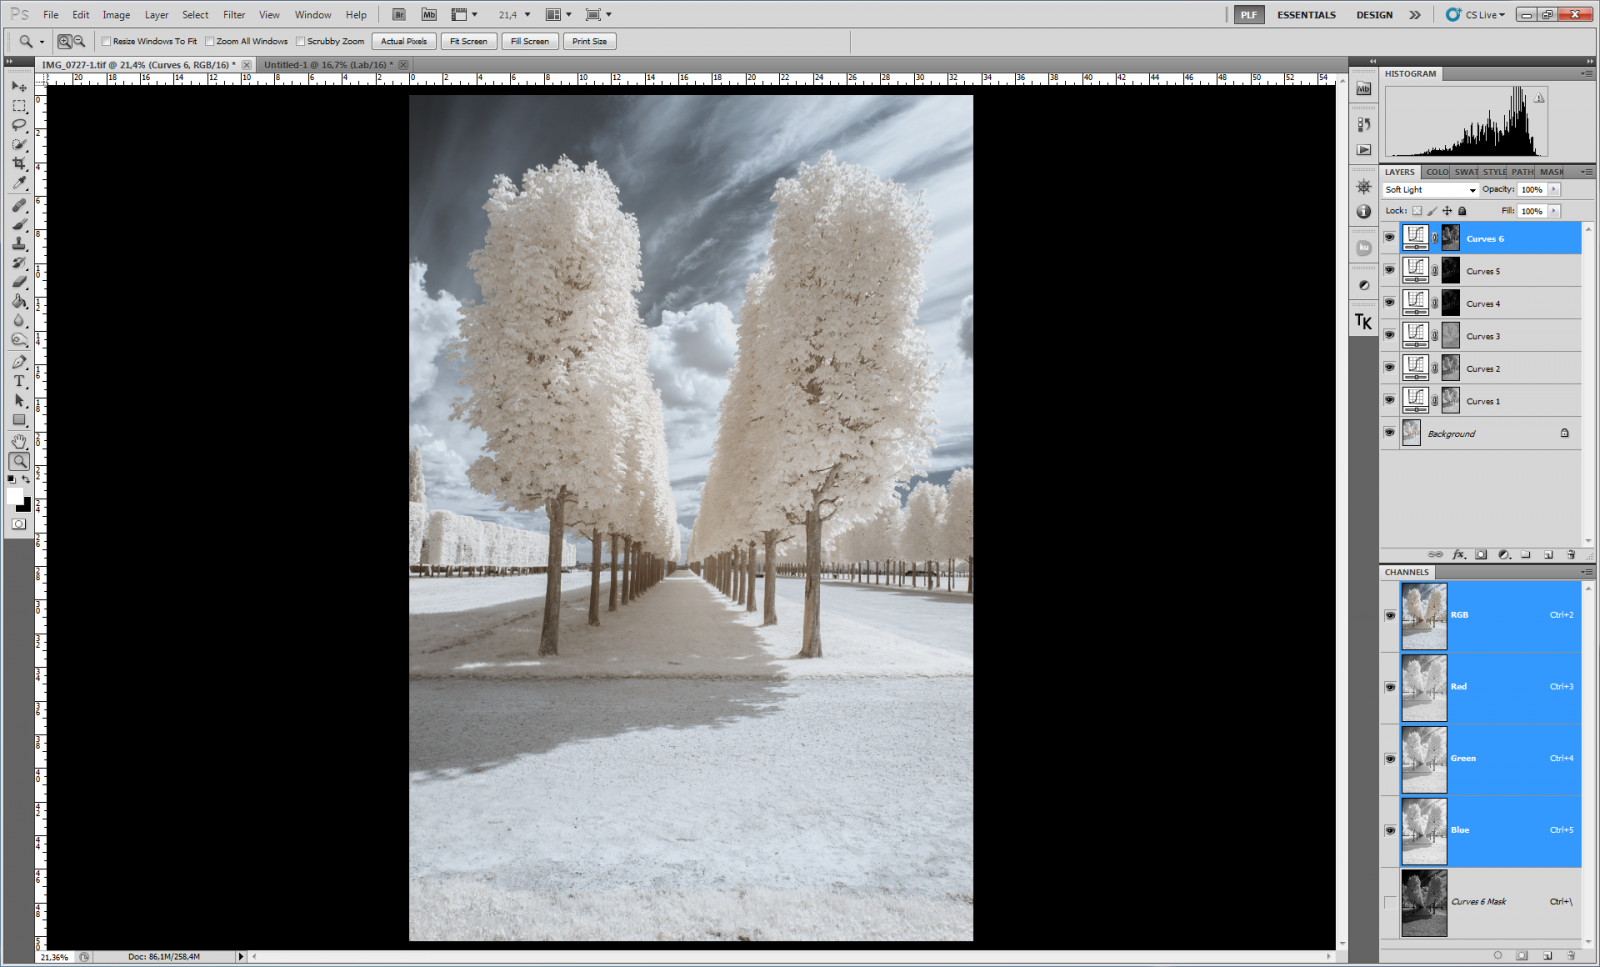 IR tuto 3 | Pierre-Louis Ferrer | Photographie infrarouge